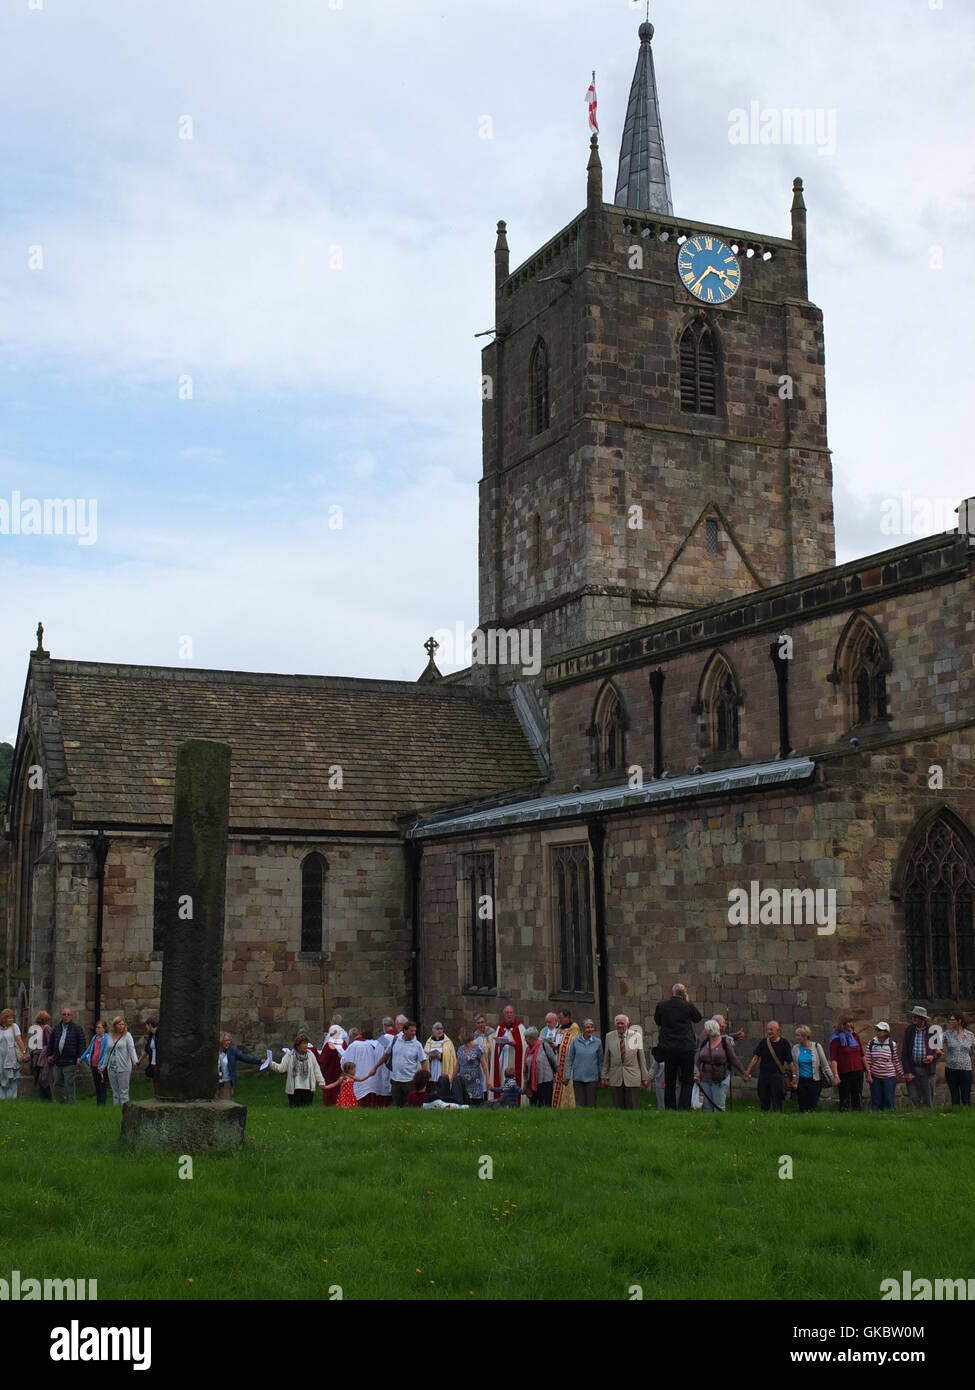 Clypping (or 'Clipping') the Church at Wirksworth, Derbyshire - townsfolk link arms and 'embrace' - Stock Image